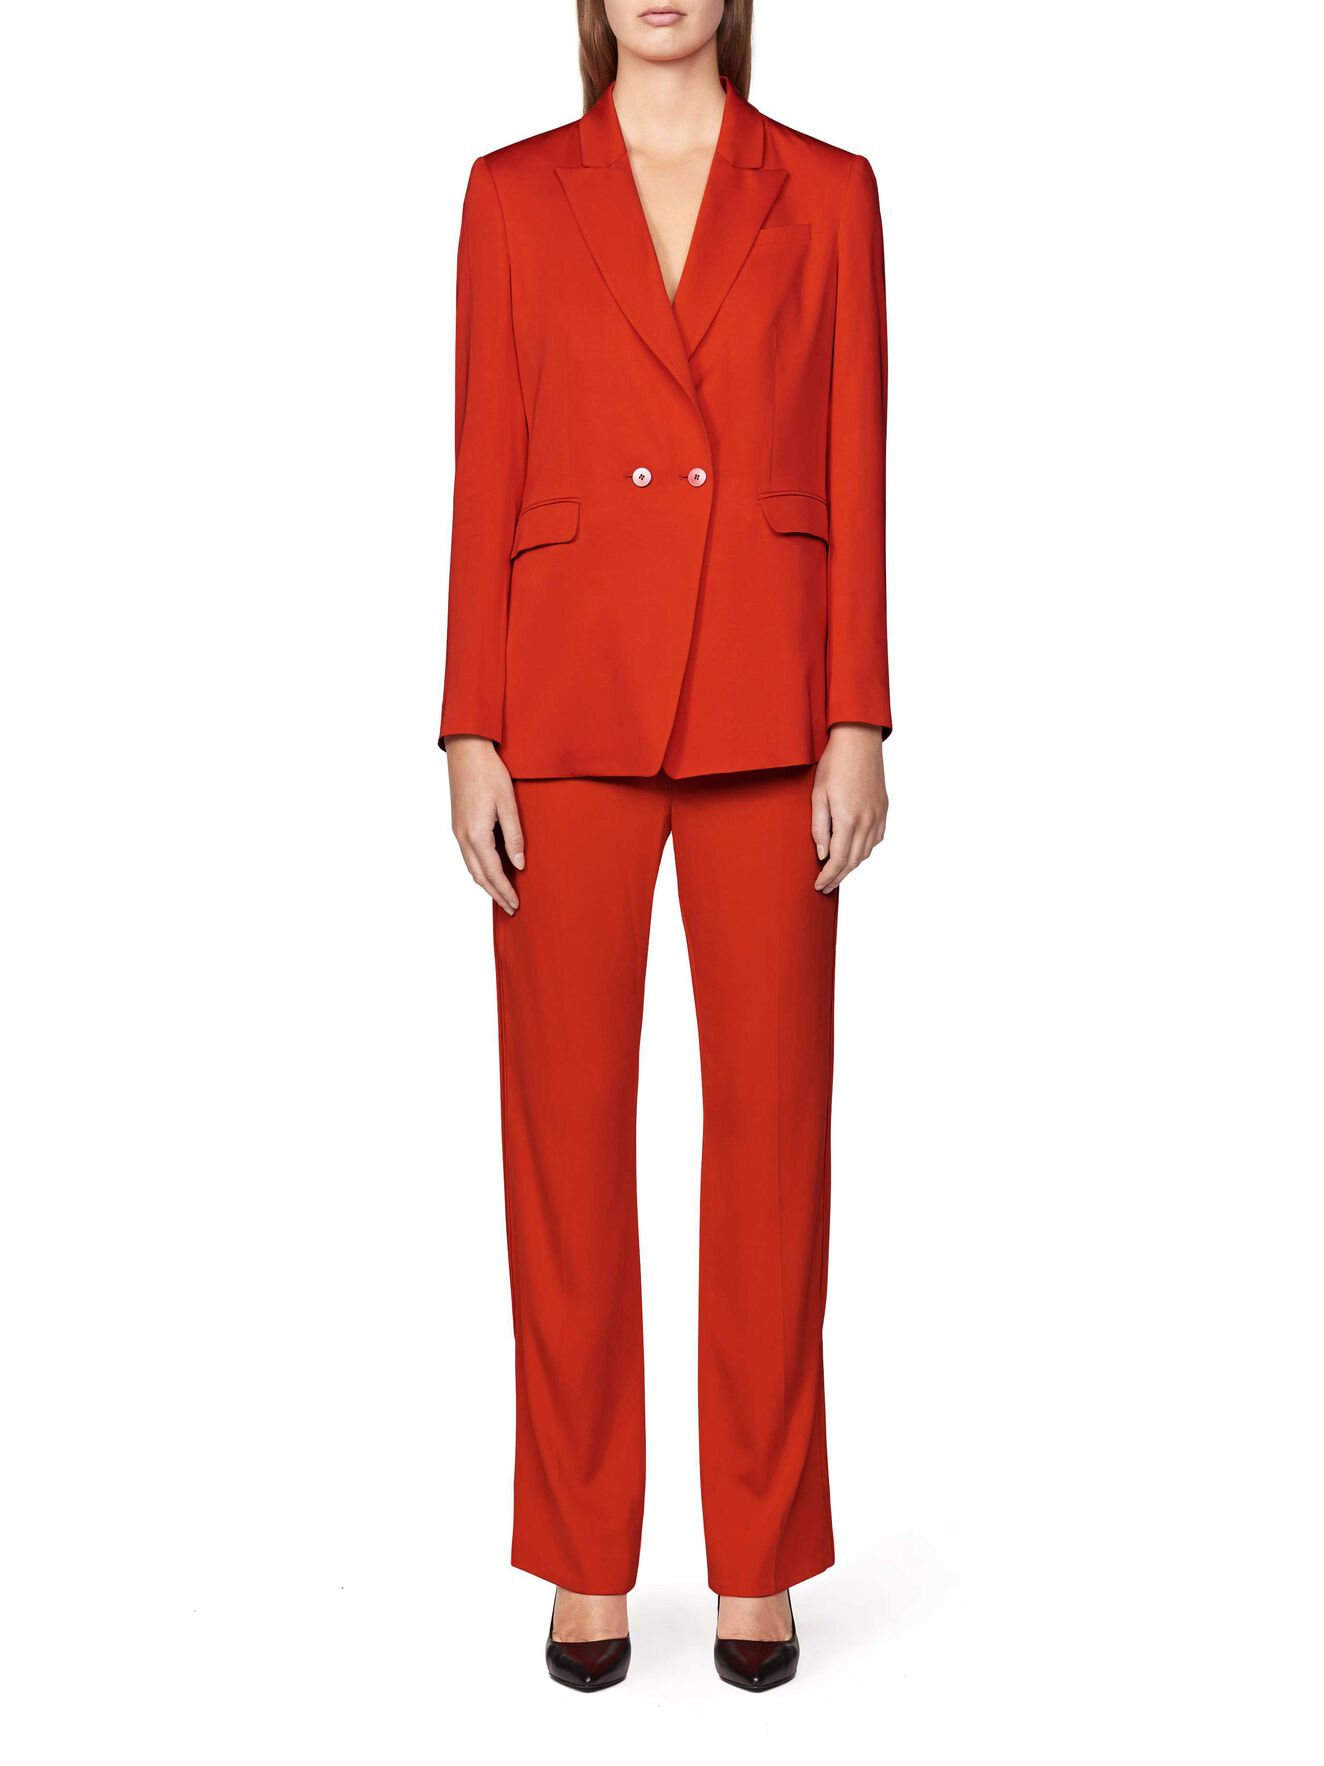 Delara Blazer in Flame Red from Tiger of Sweden